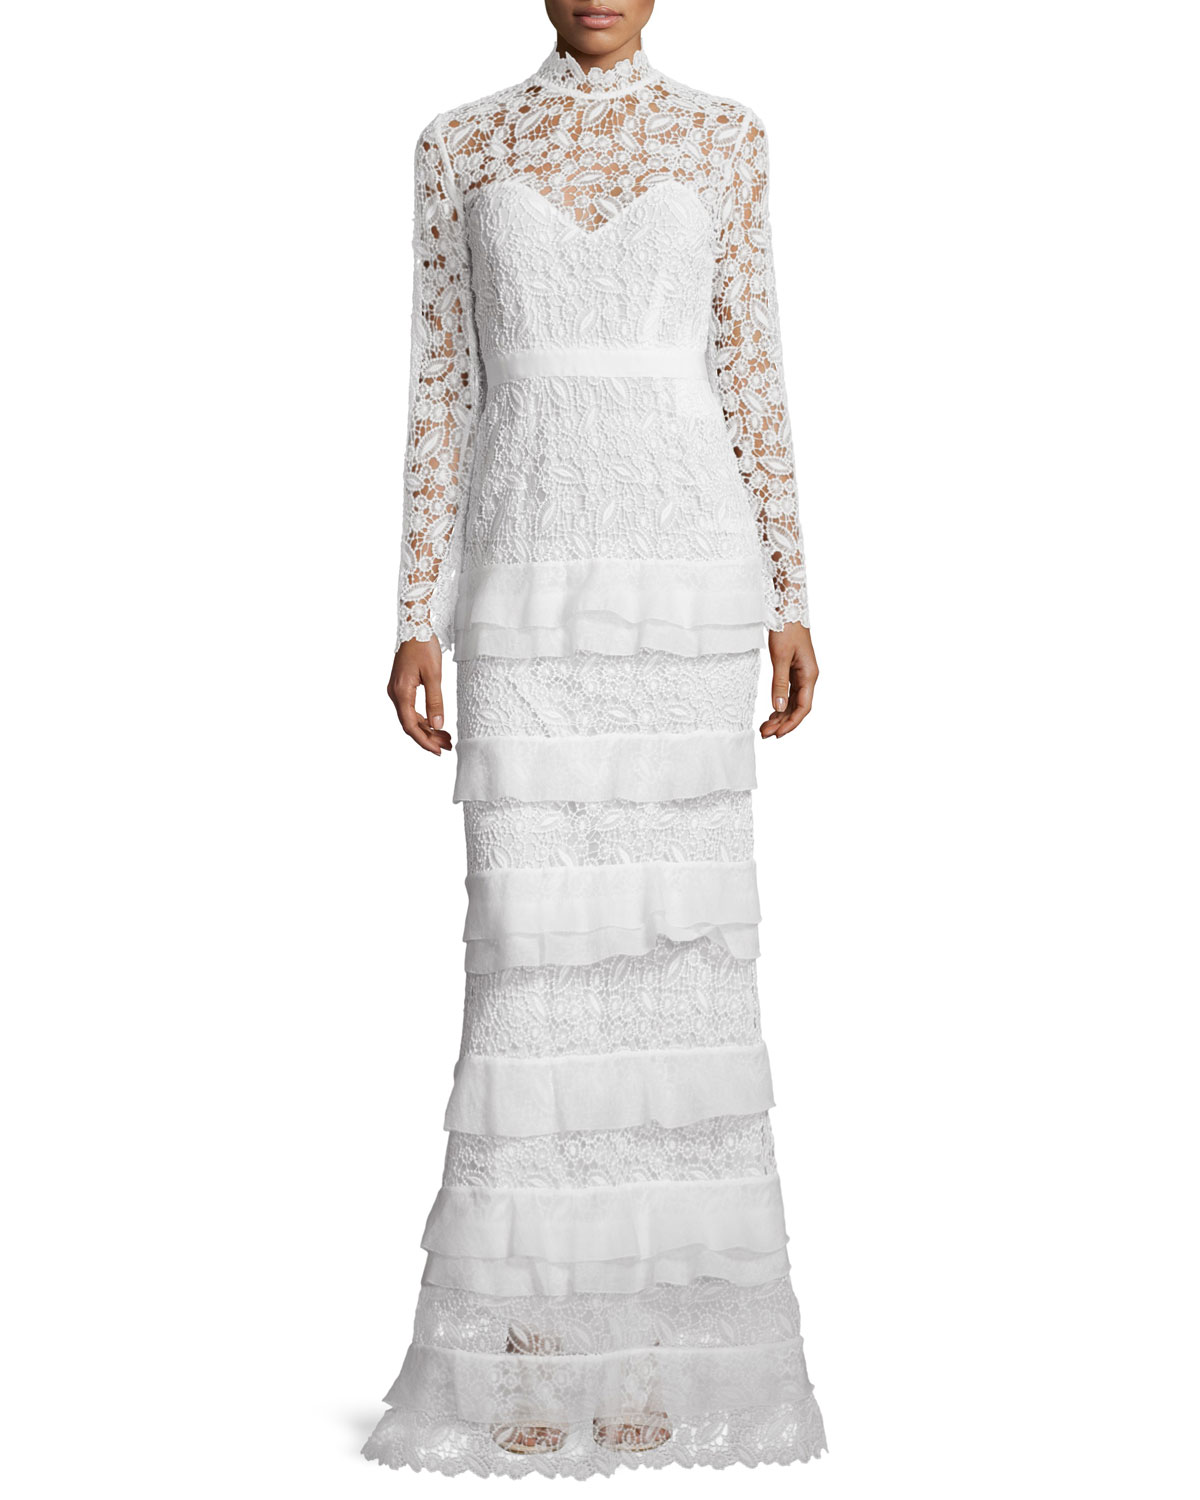 Self Portrait Primrose Long-Sleeve Tiered Lace Gown, White, Size: 4